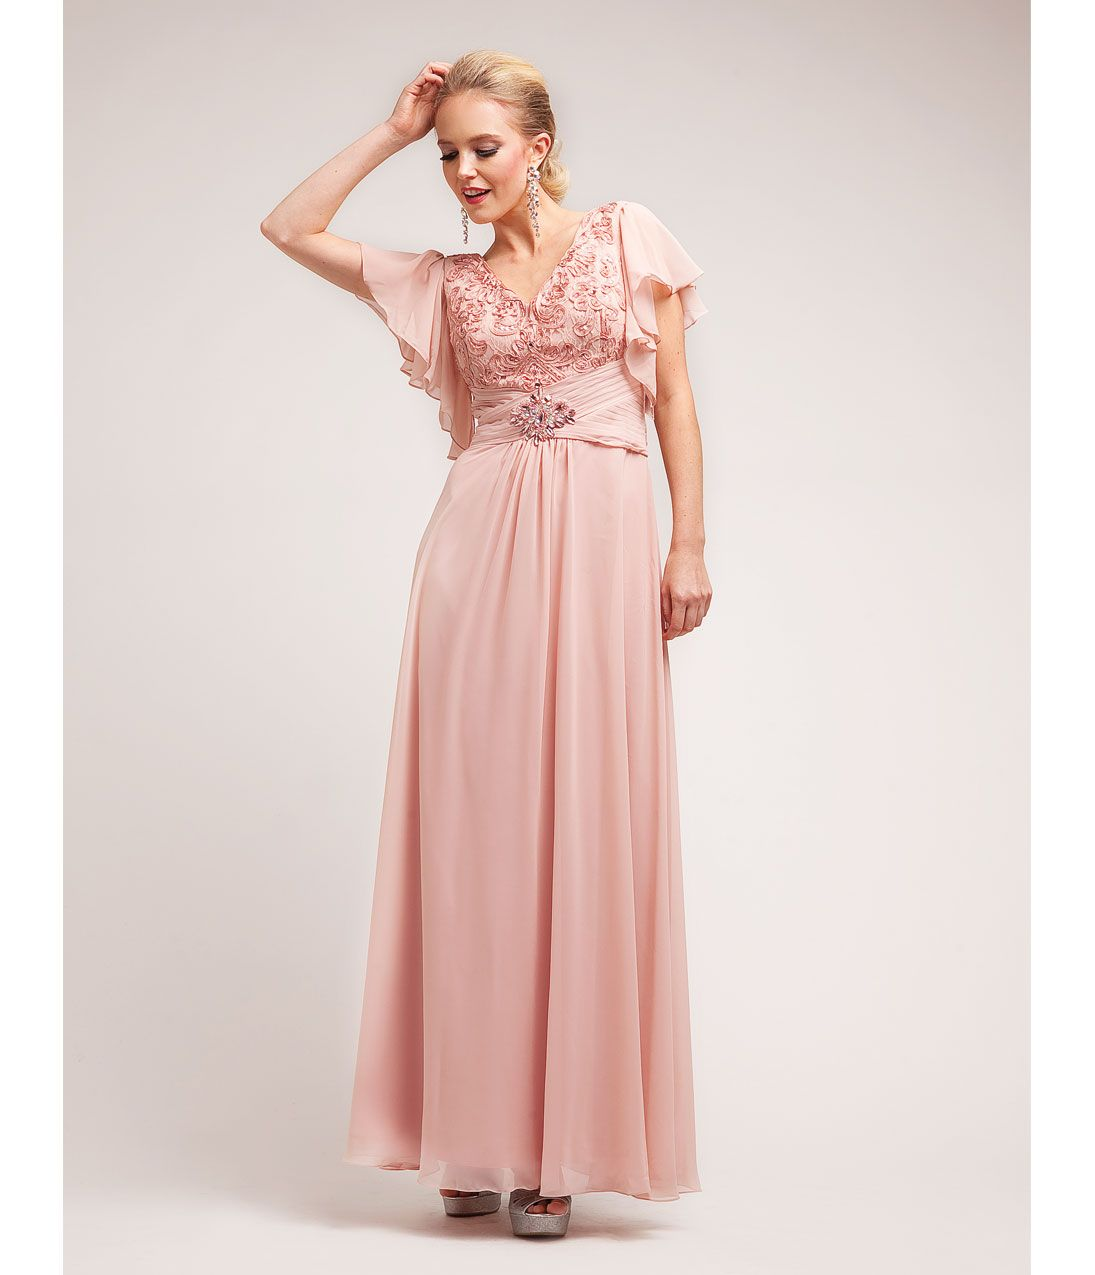 Dusty Rose Chiffon Lace Modest Gown Uniquevintage Prom